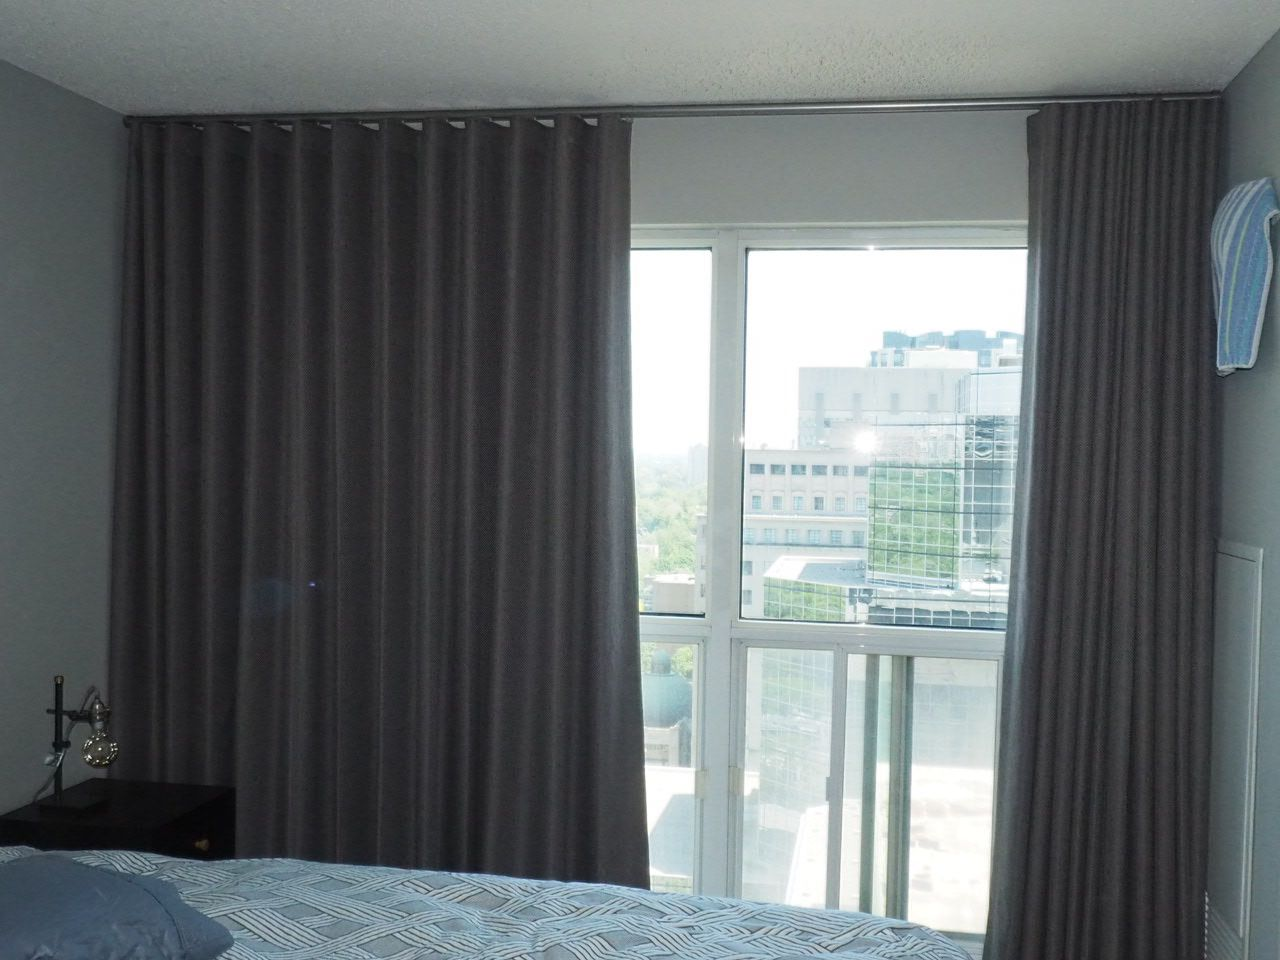 Ceiling Mounted Blackout Drape Room Darkening Modern Wave Drapes For A Condo Blackout Blinds Blinds Buy Curtains